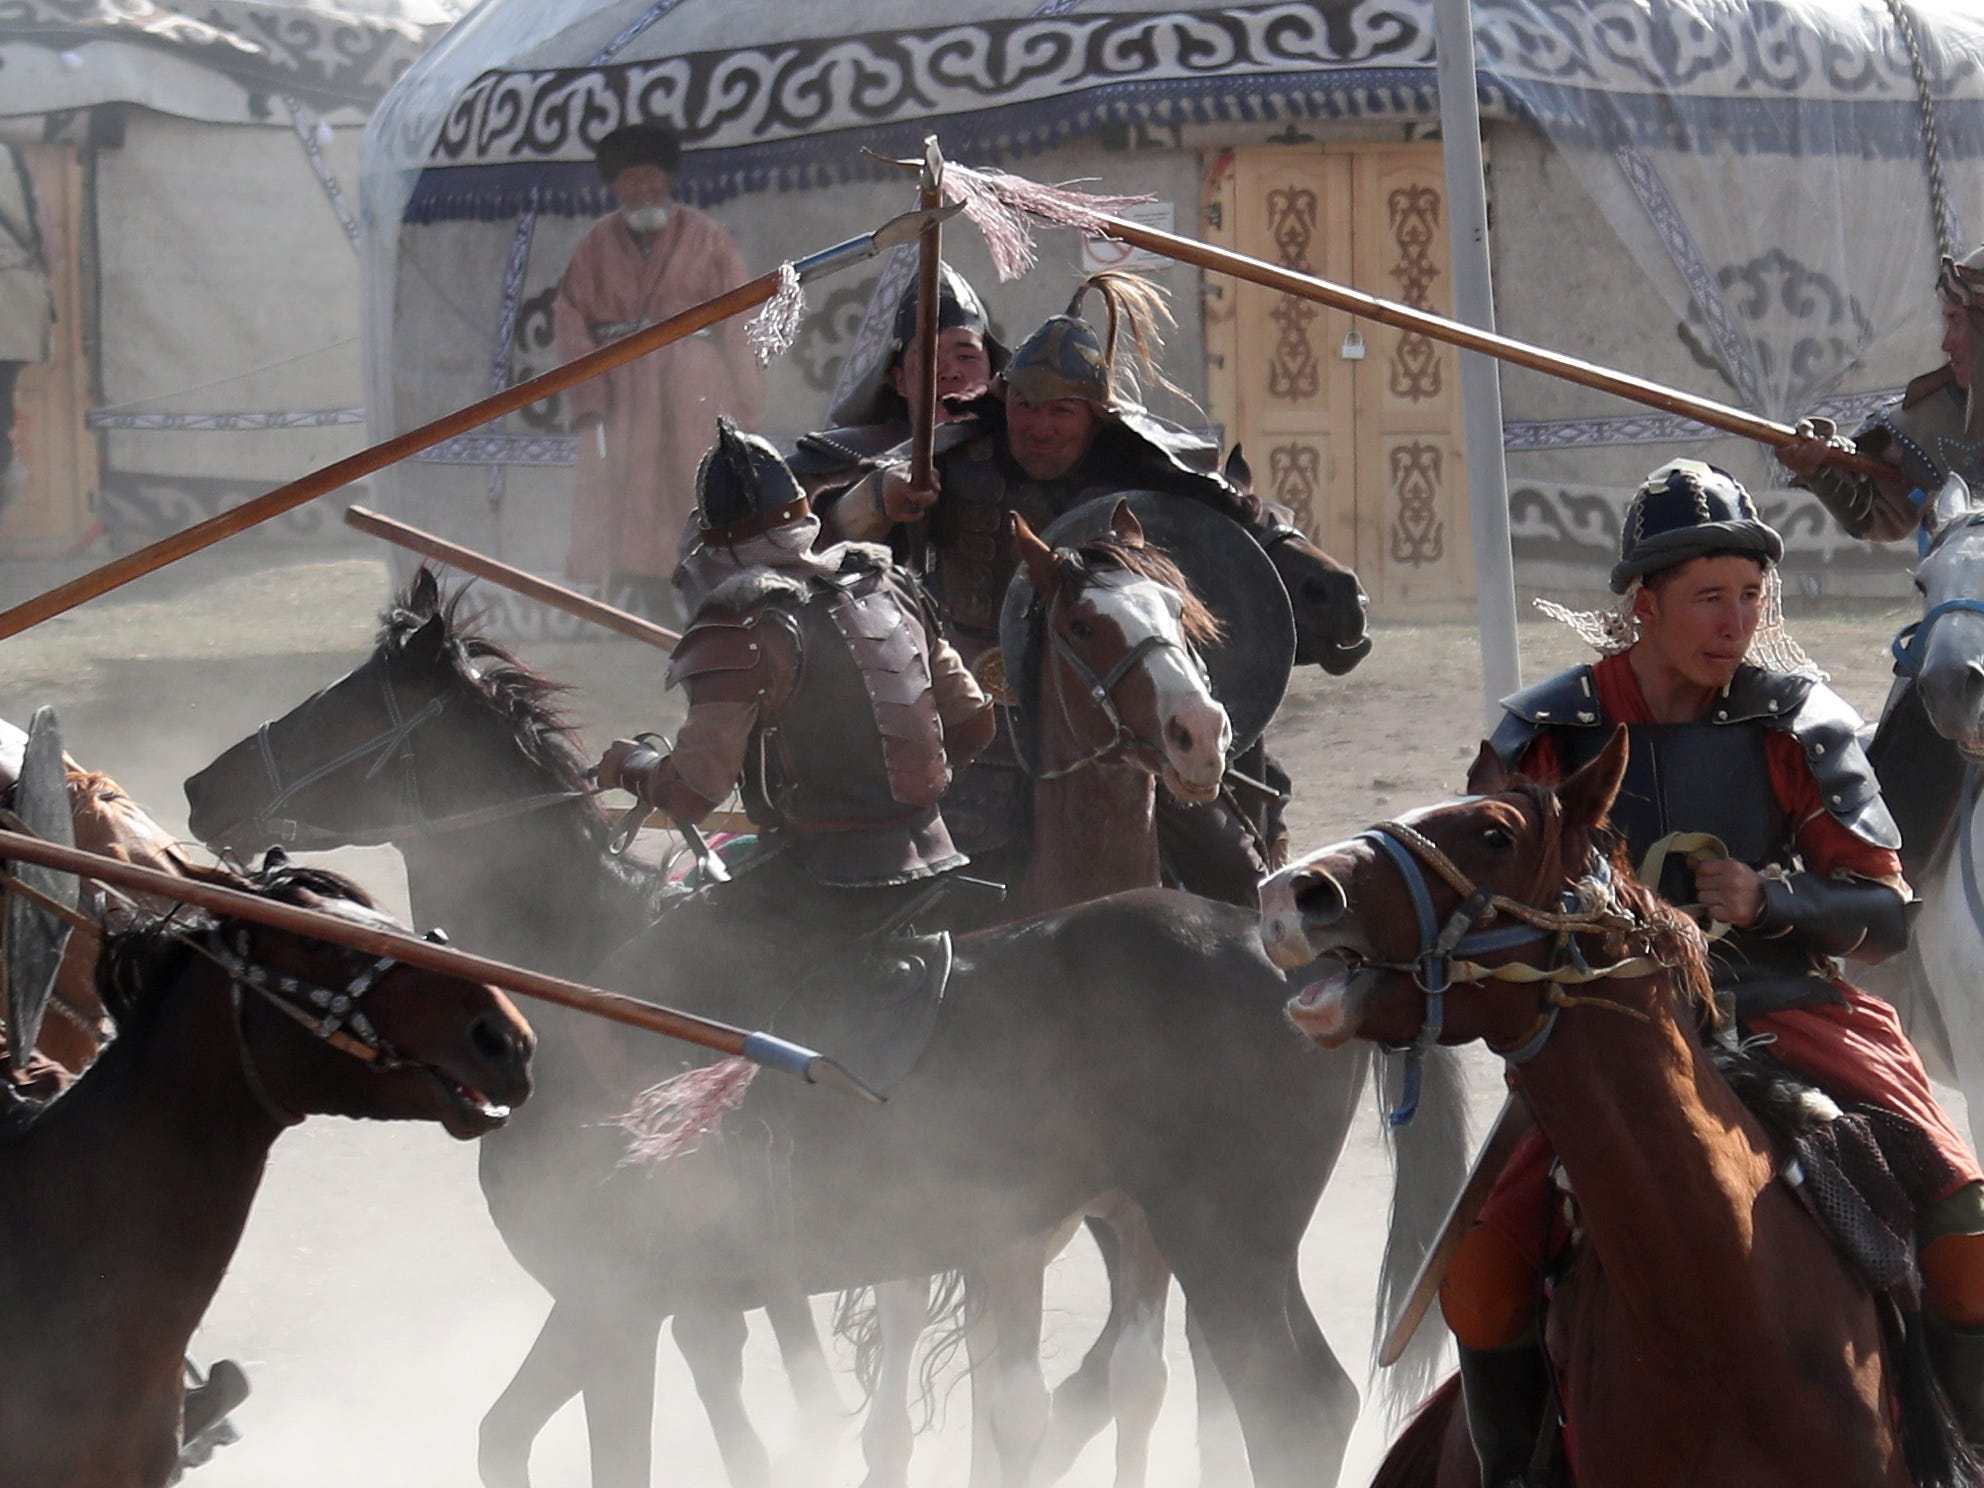 Participants take part in the third World Nomad Games in Cholpon-Ata, Kyrgyzstan, Sept. 3, 2018.